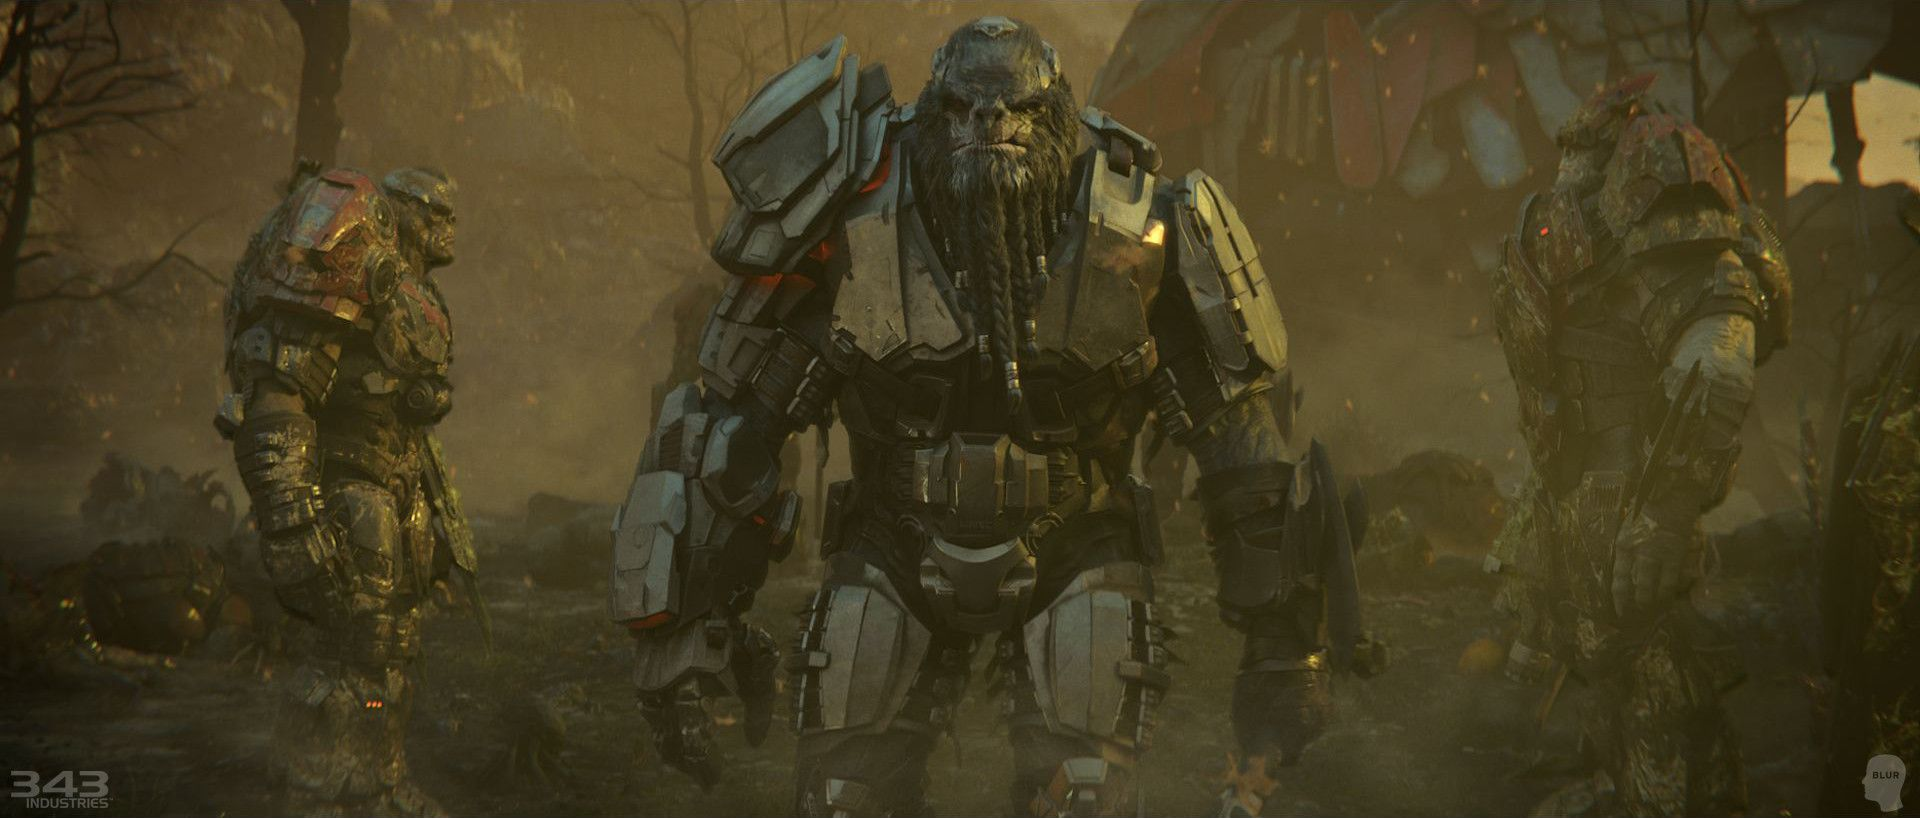 ArtStation - Halo Wars 2 - Awakening the Nightmare , Keith